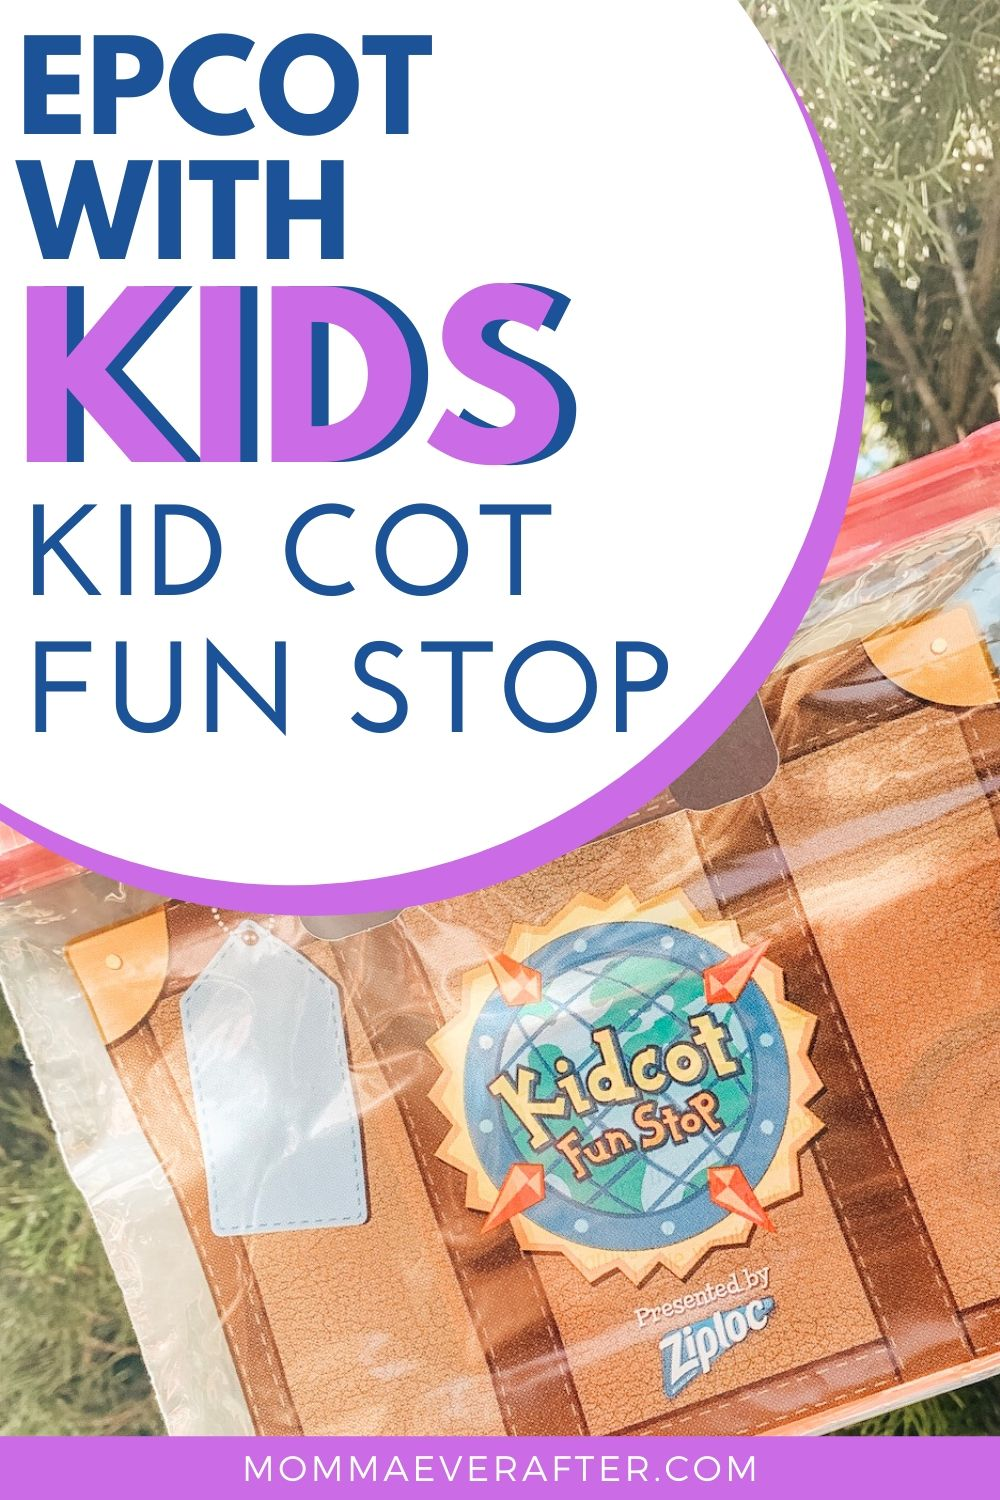 Kid Cot Fun Stop at Epcot